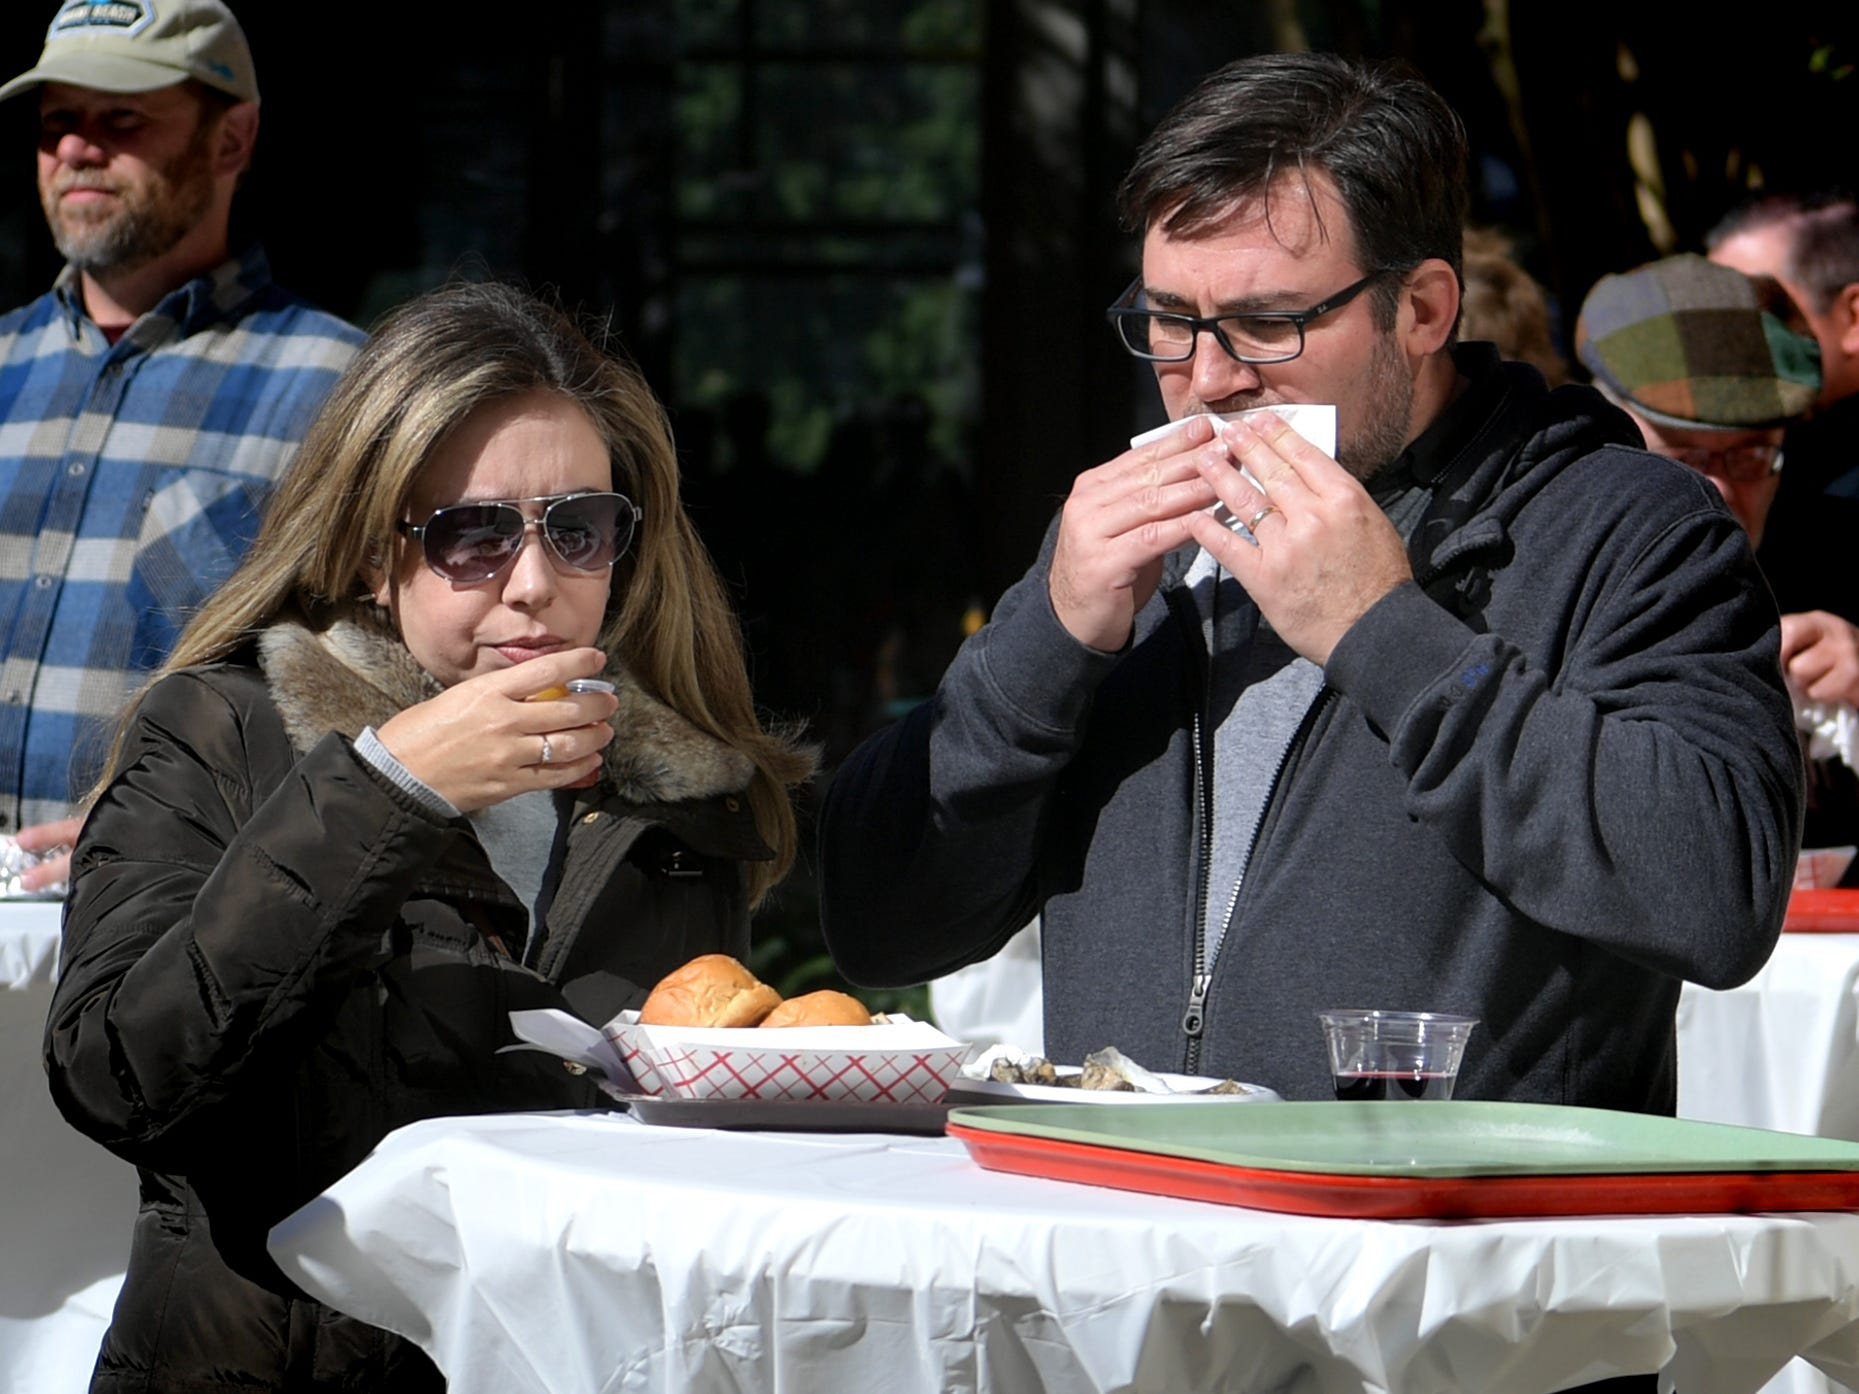 Luis Soares and his wife Erika dine in the courtyard of the Agricultural & Industrial Museum during the History On The Half Shell fundraising event sponsored by the York County History Center Sunday, October 21, 2018. The annual event offered oysters, a variety of food, drink, music, children's activities and historical presentations. Bill Kalina photo